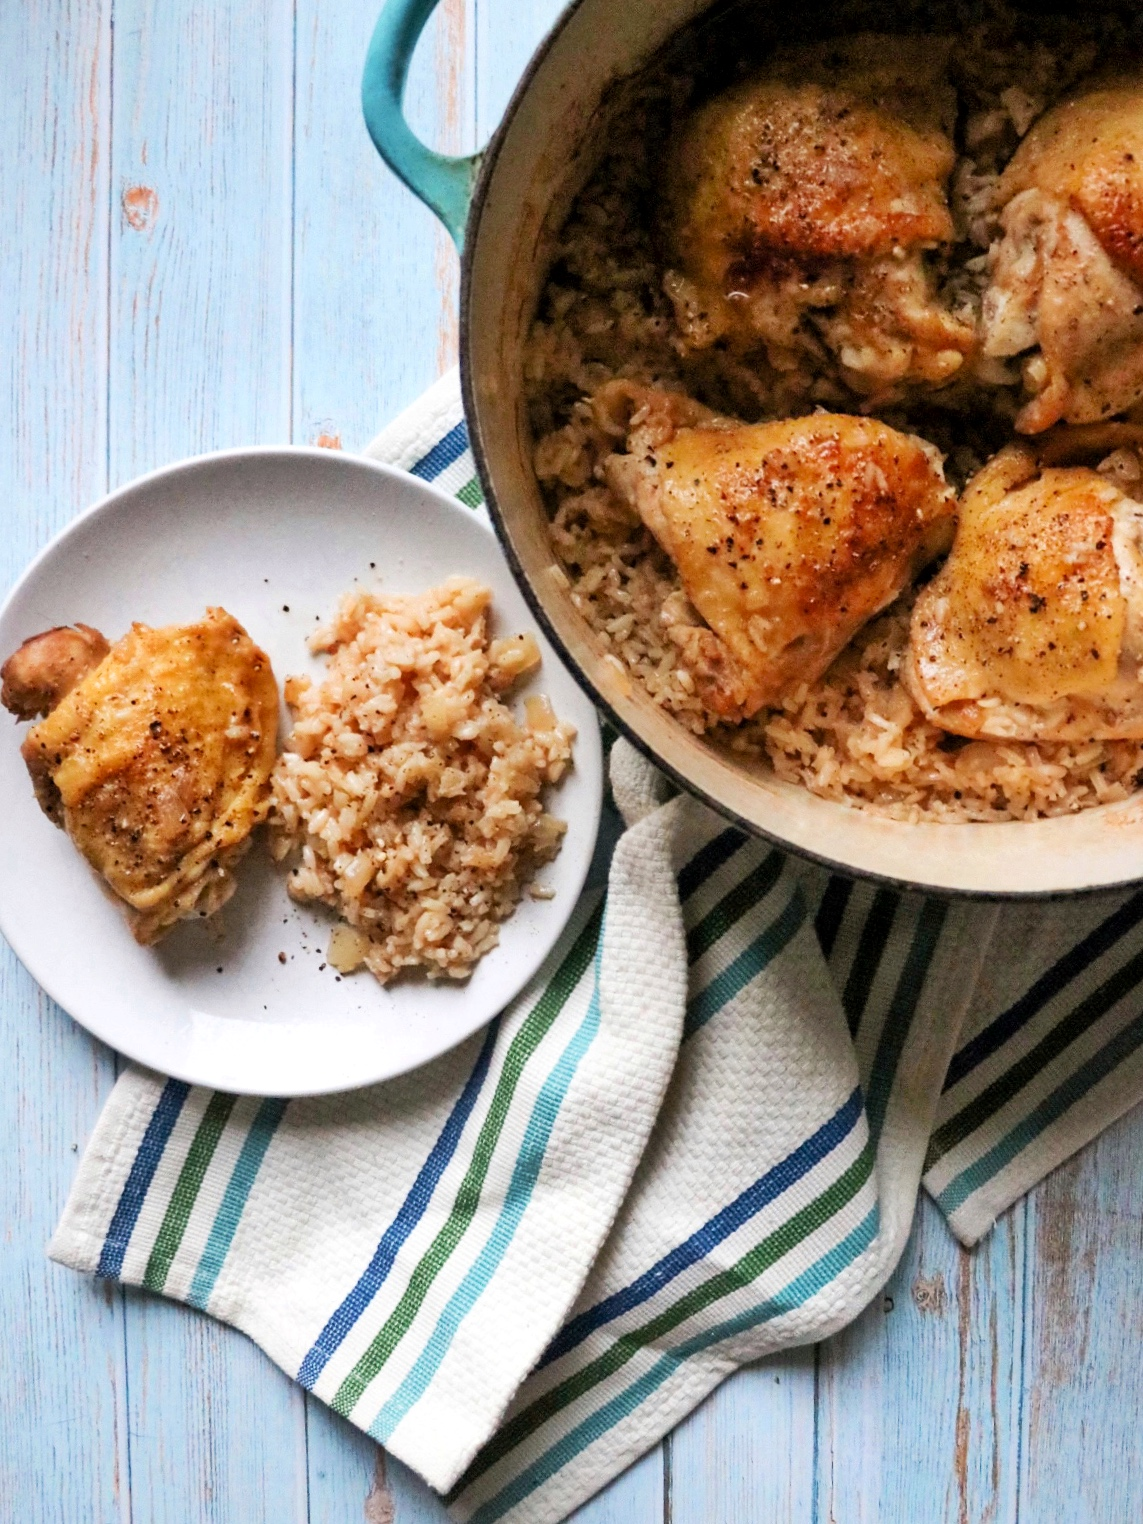 Baked Lemon-Pepper Chicken Thighs and Rice